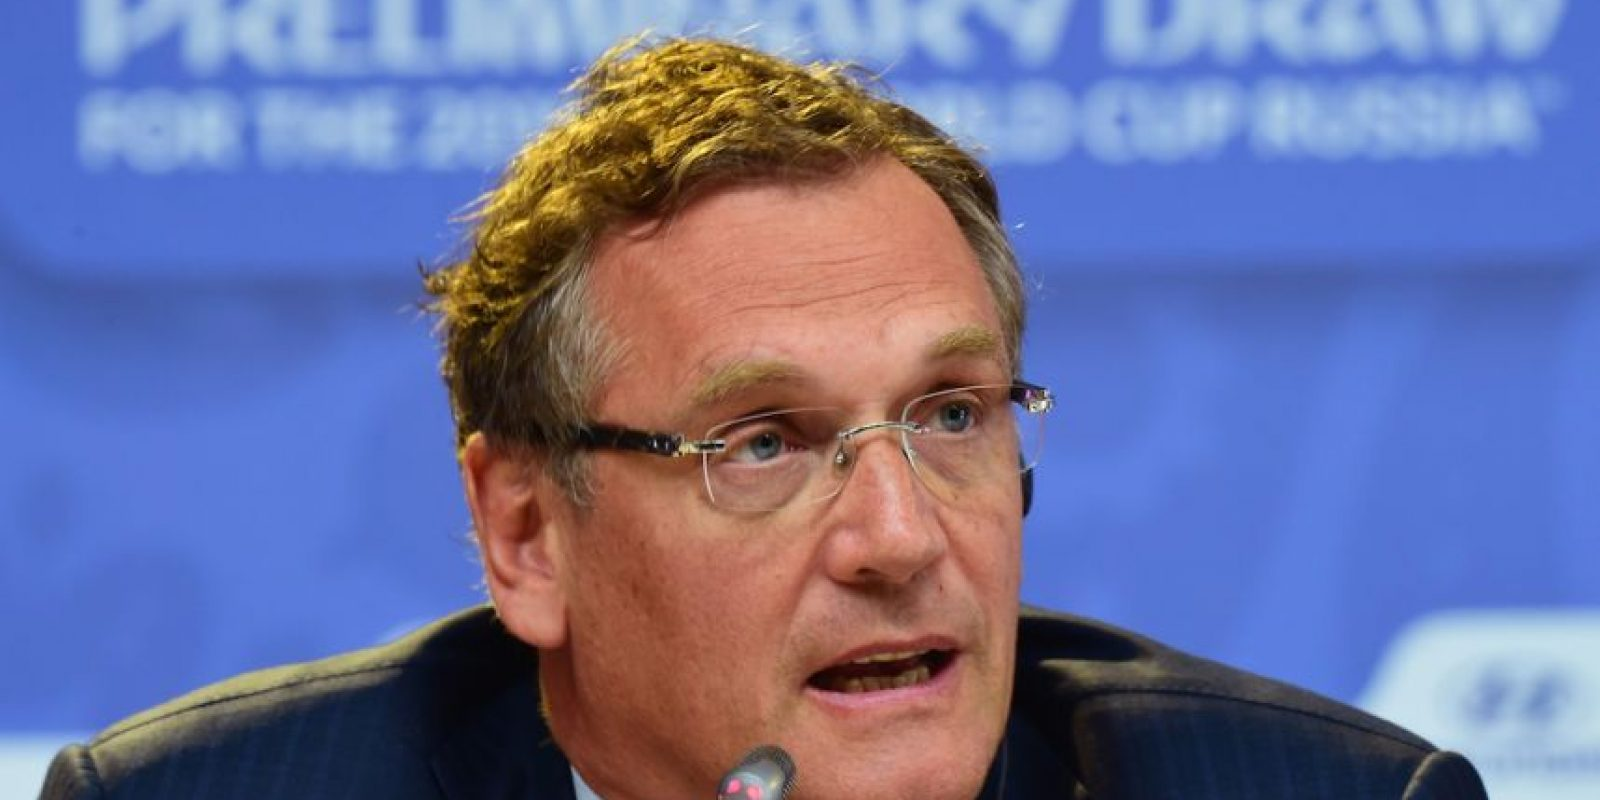 14. Jerome Vlacke / Secretario General de la FIFA. Foto: Getty Images